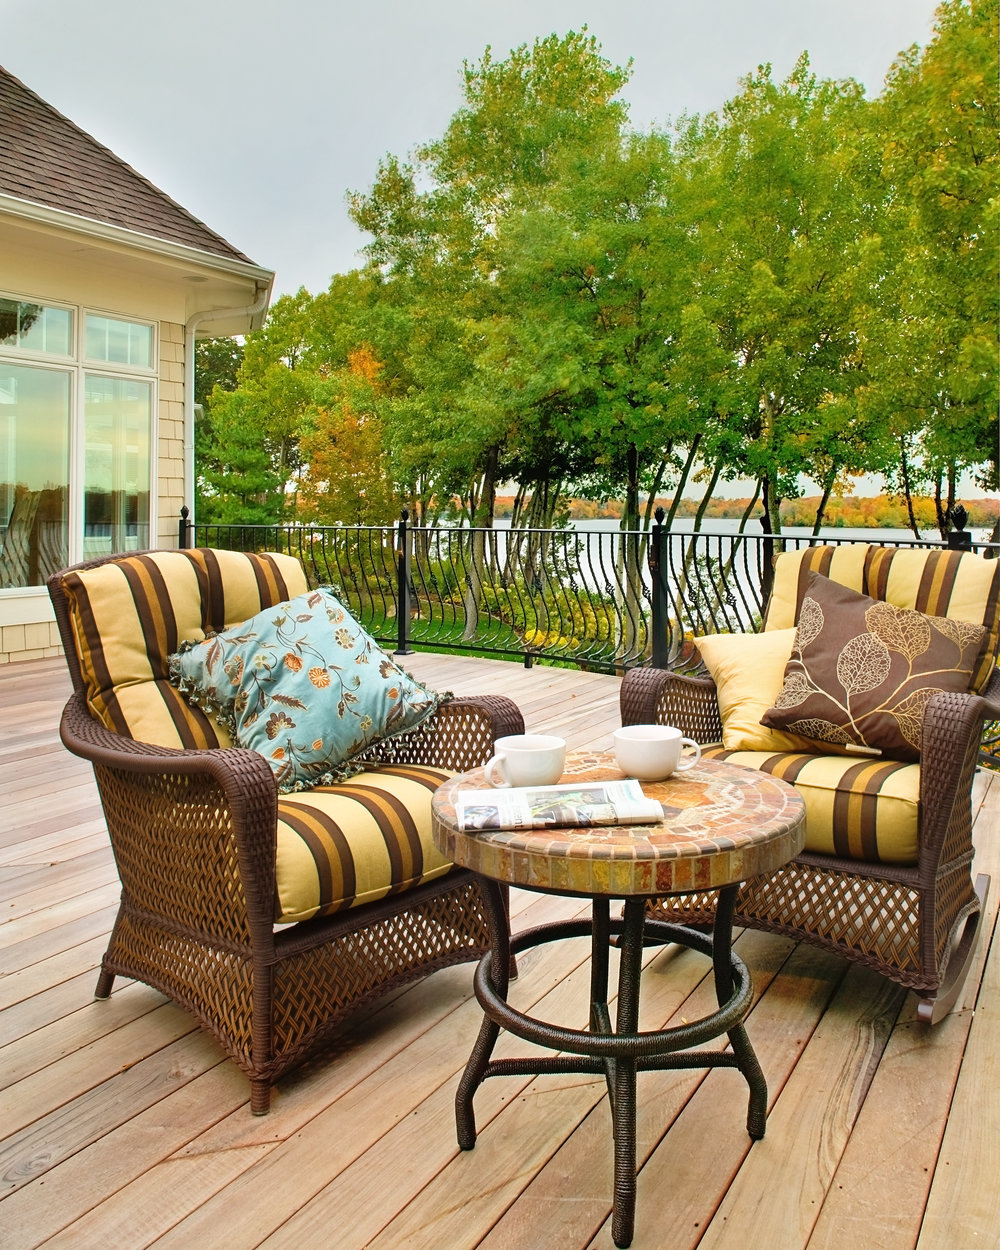 Moms Design Build - Hardwood Deck Lake Minnetonka